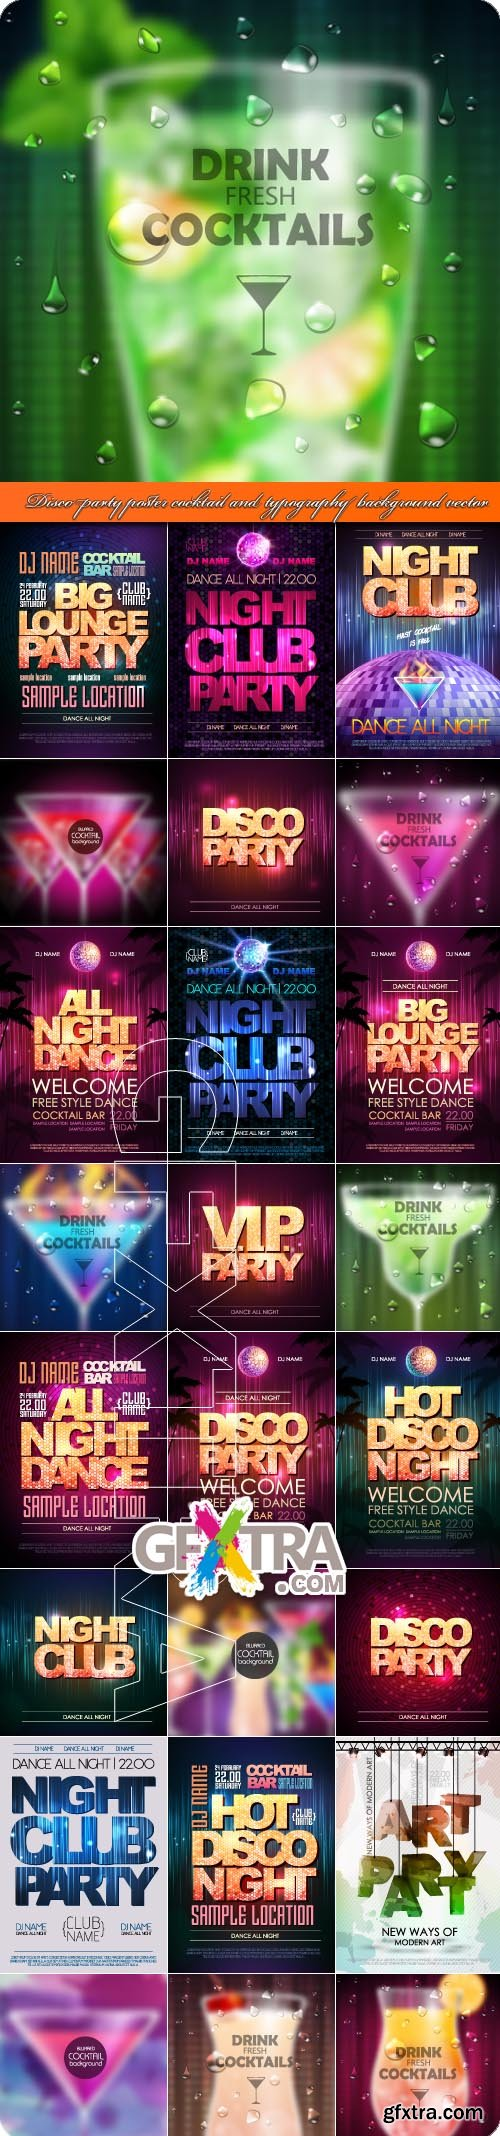 Disco party poster cocktail and typography background vector